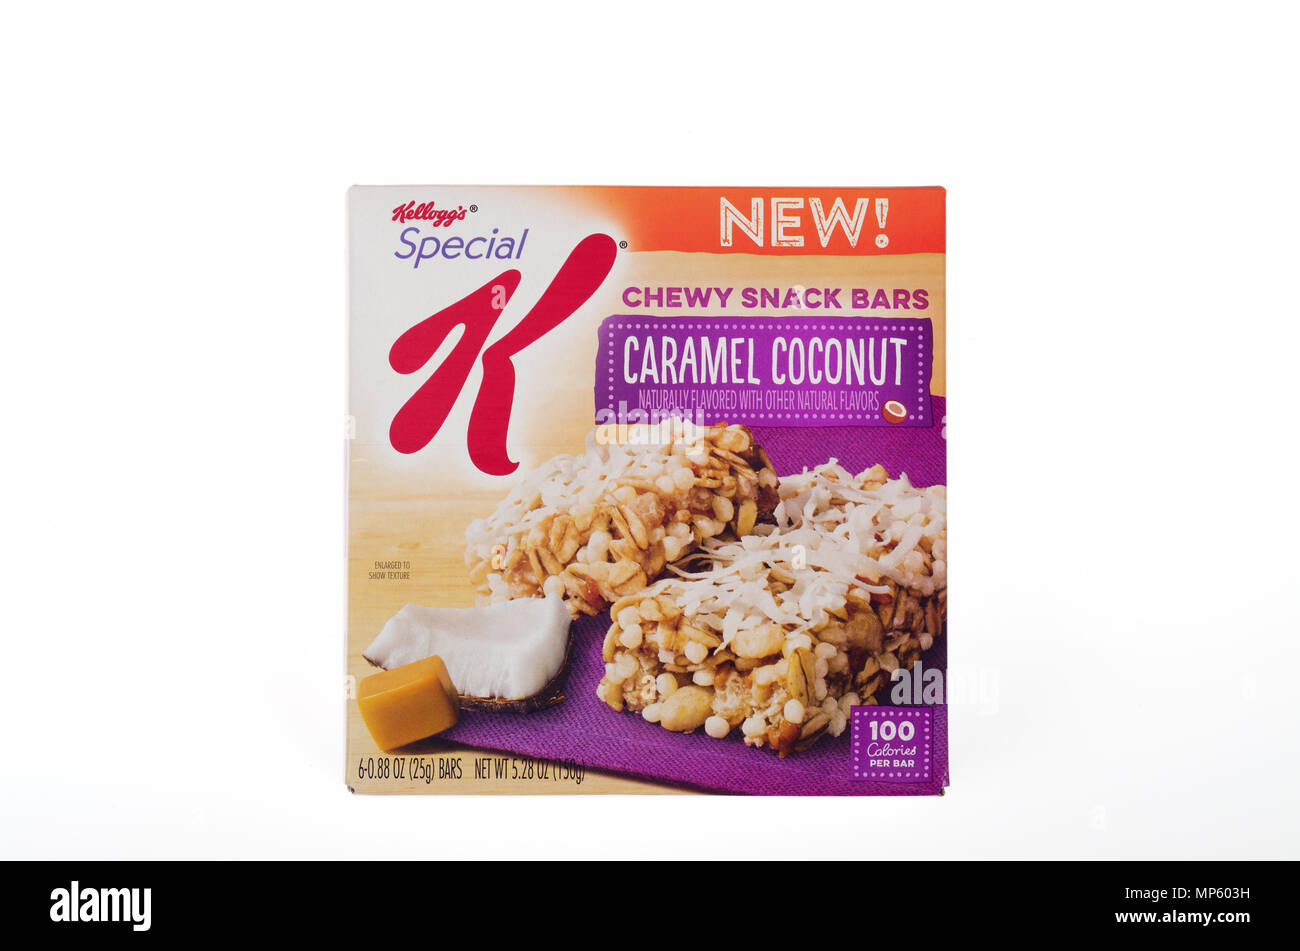 Box of Kellogg's Special K Chewy Caramel Coconut Snack Bars - Stock Image